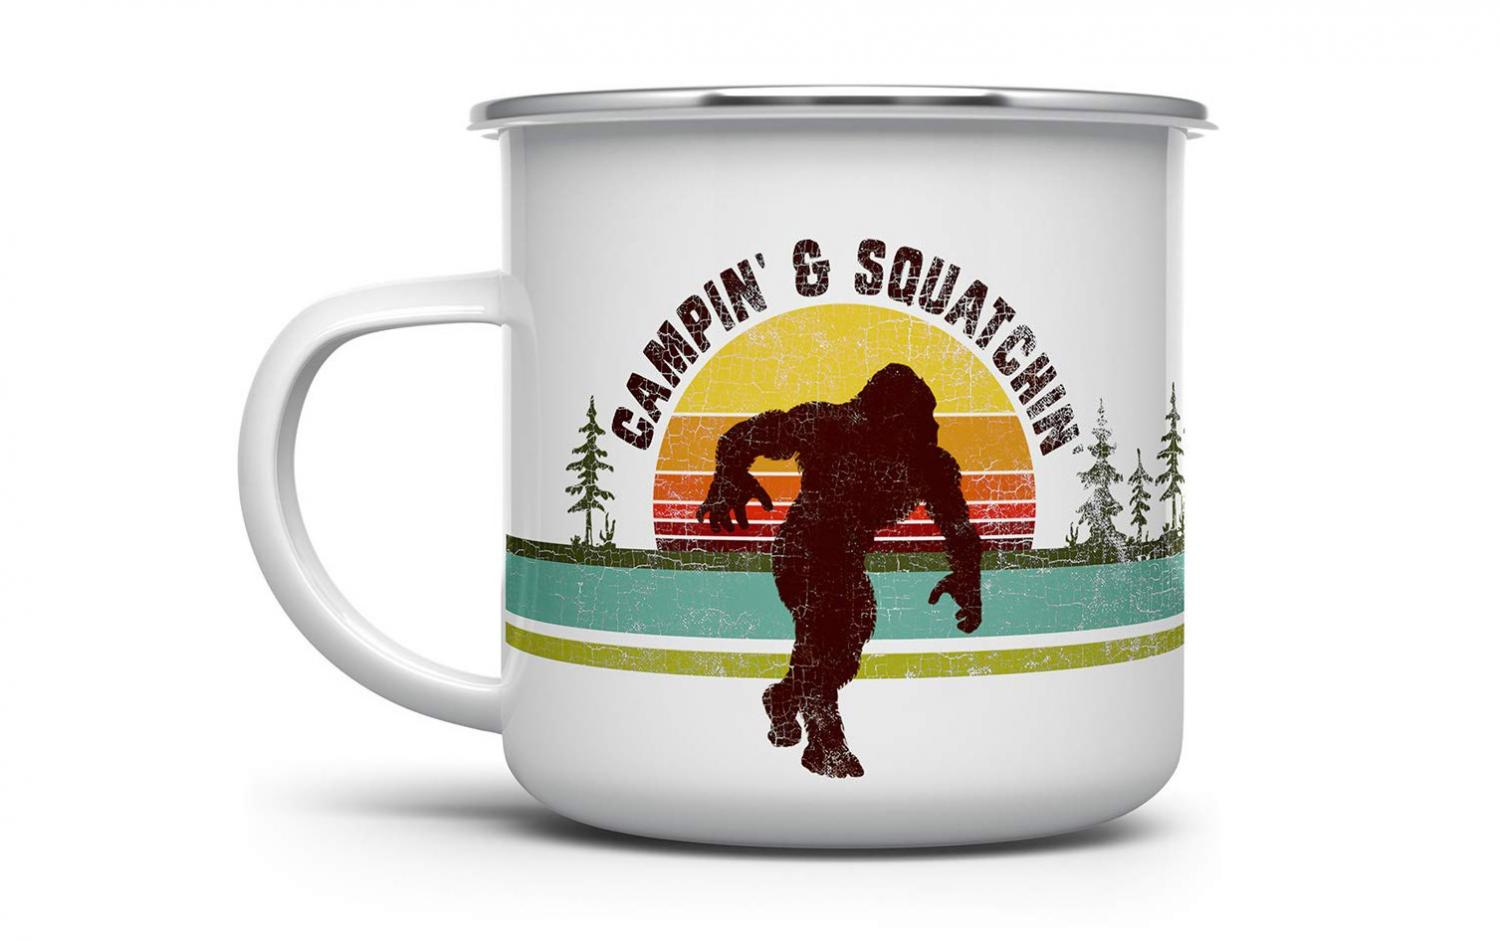 A Sasquatch Coffee Mug (Id Rather Be Squatchin)